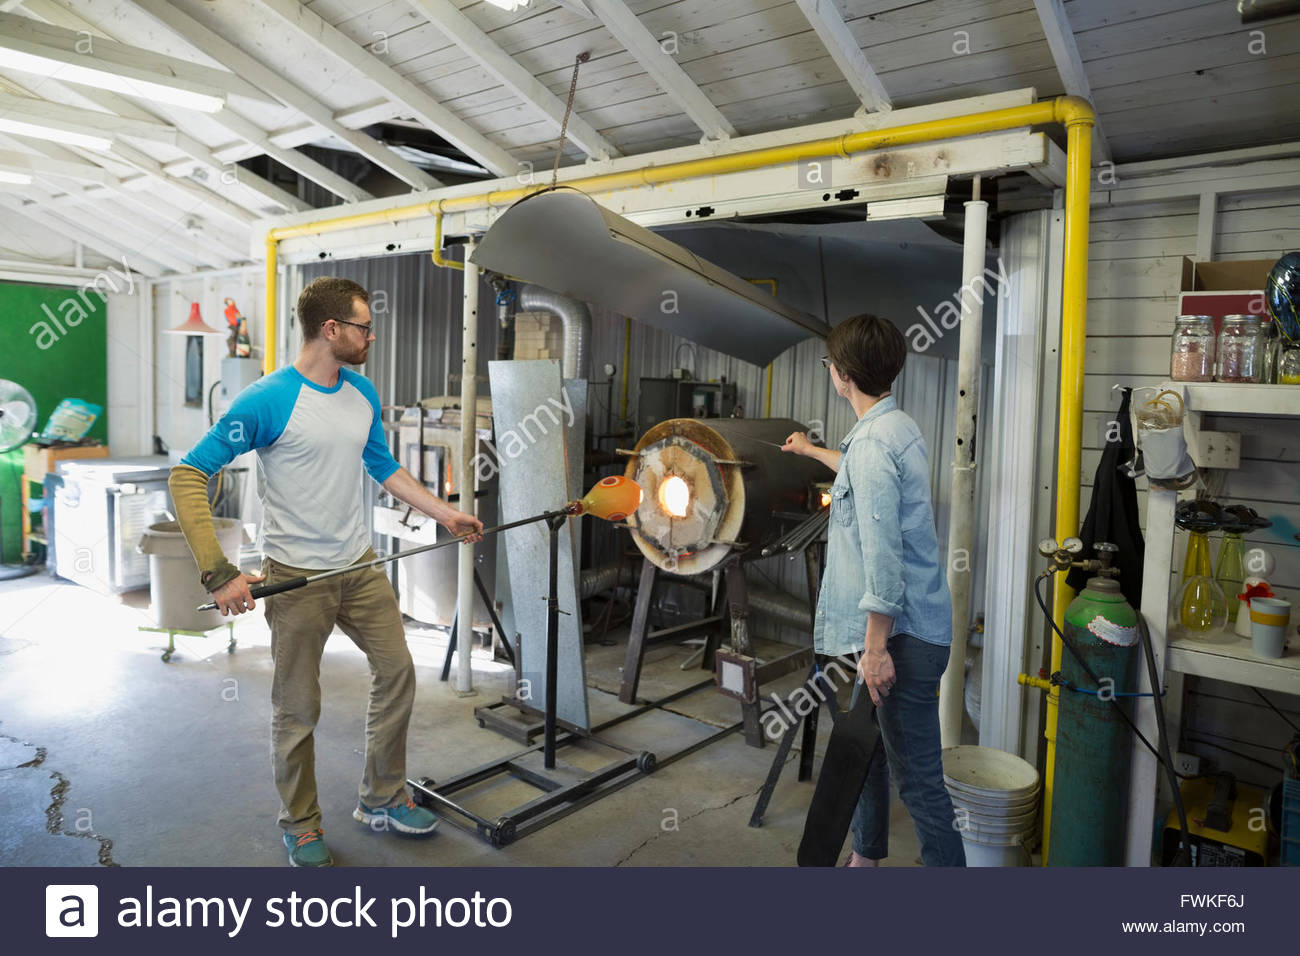 Glassblower heating molten glass at furnace in workshop - Stock Image